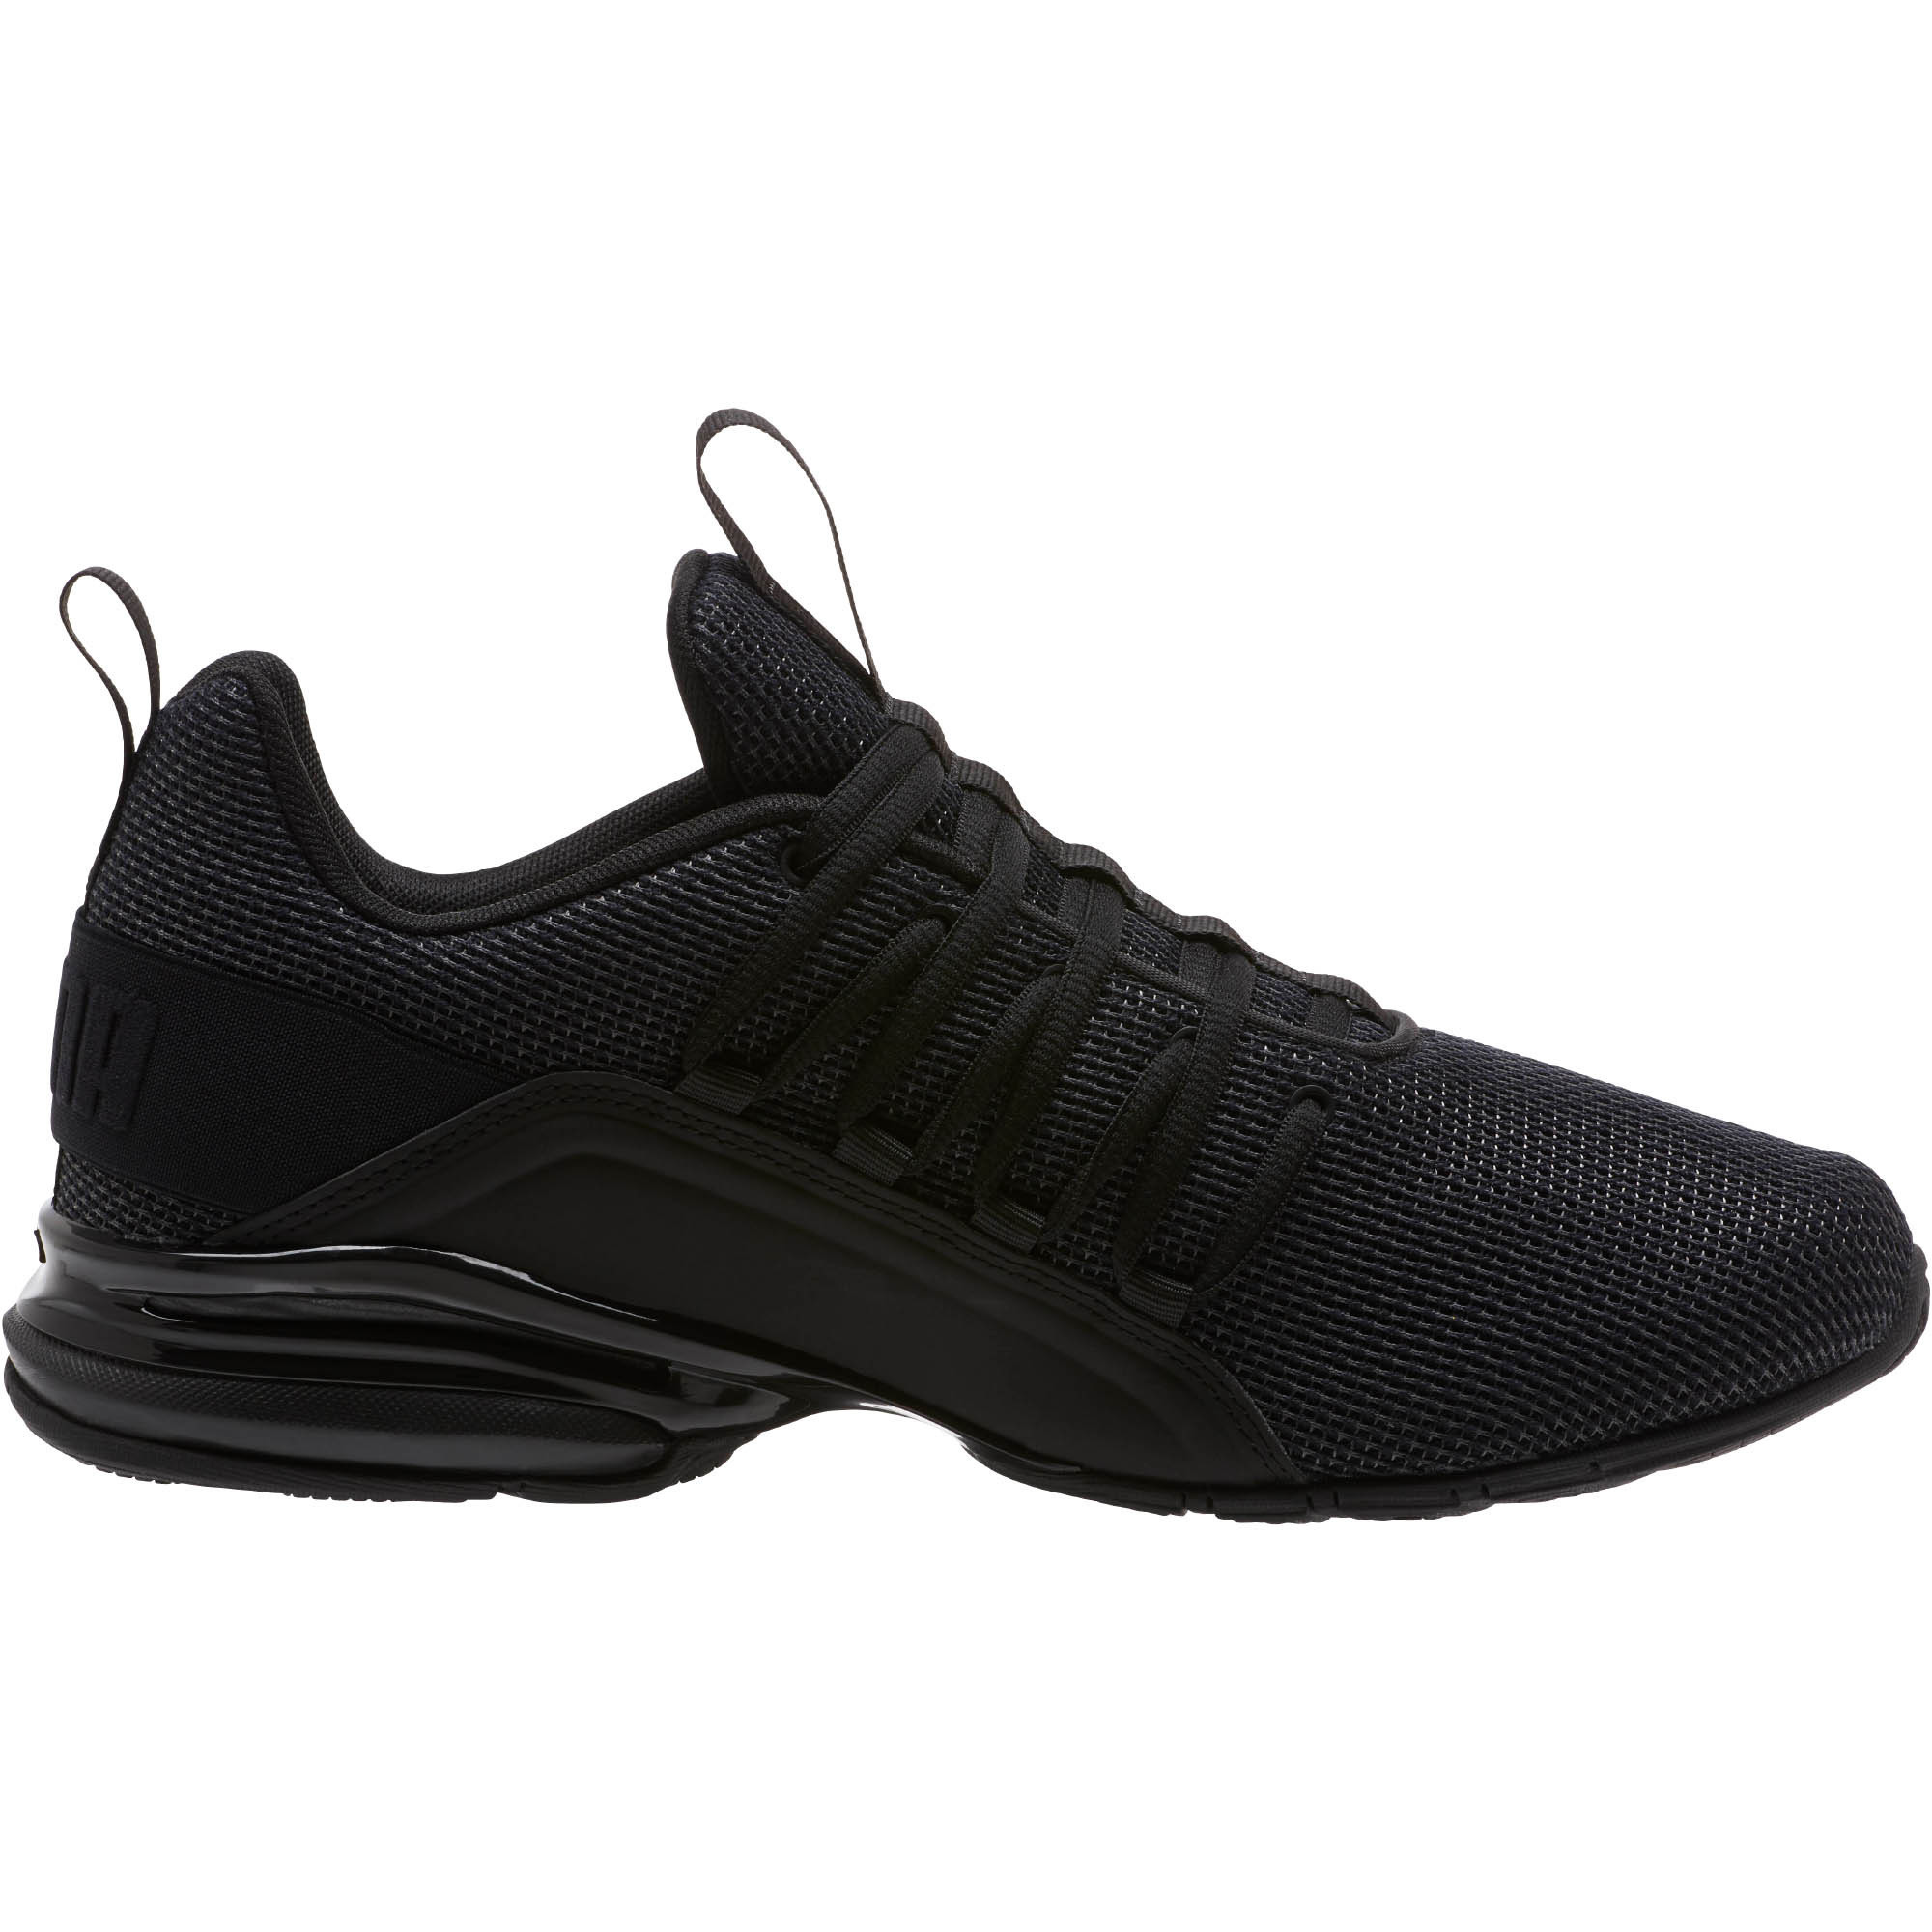 PUMA-Men-039-s-Axelion-Mesh-Training-Shoes thumbnail 10